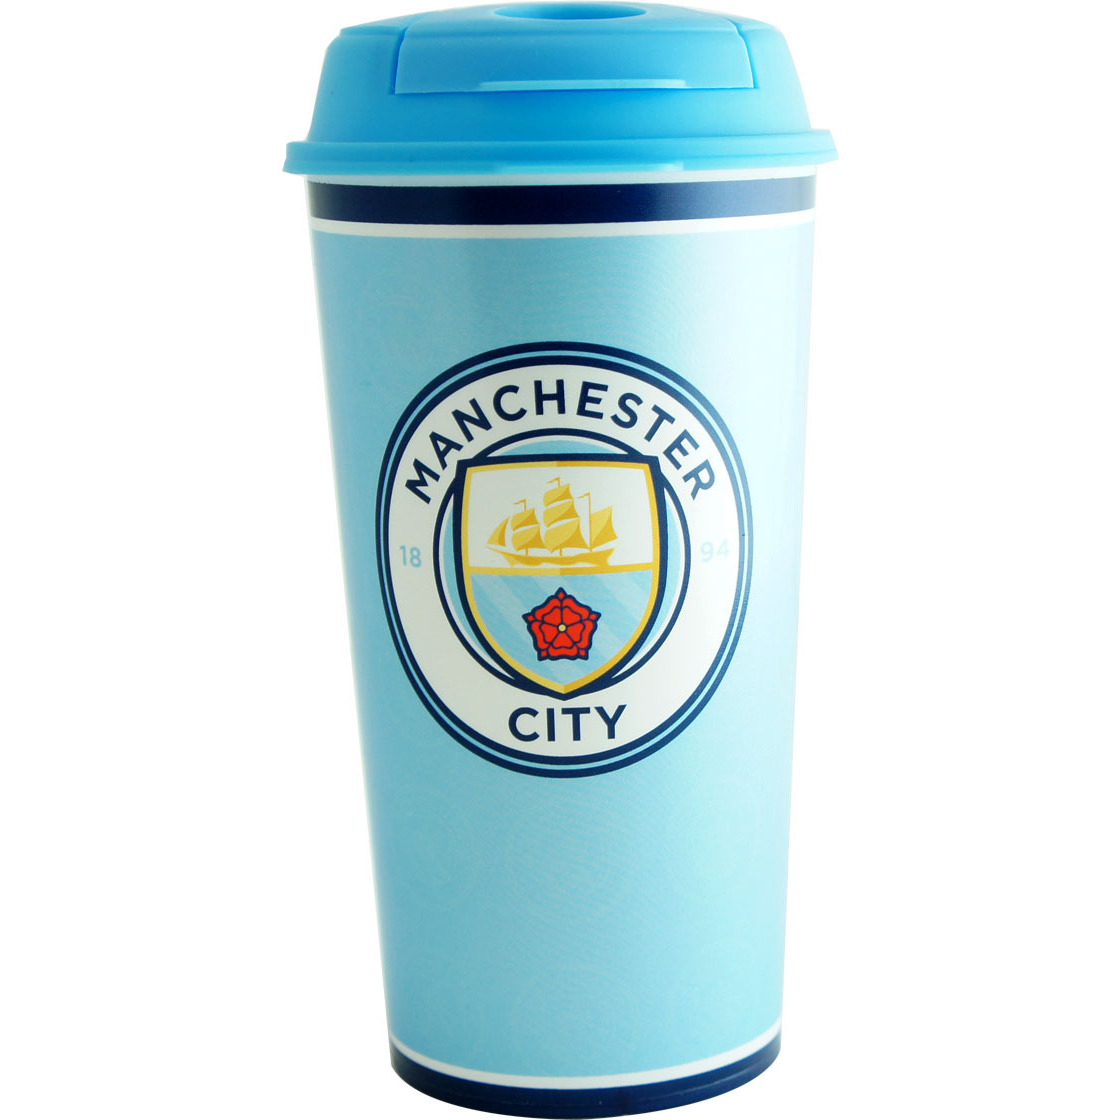 Manchester City F.C. Travel Plastic Bottle/Mug Crest